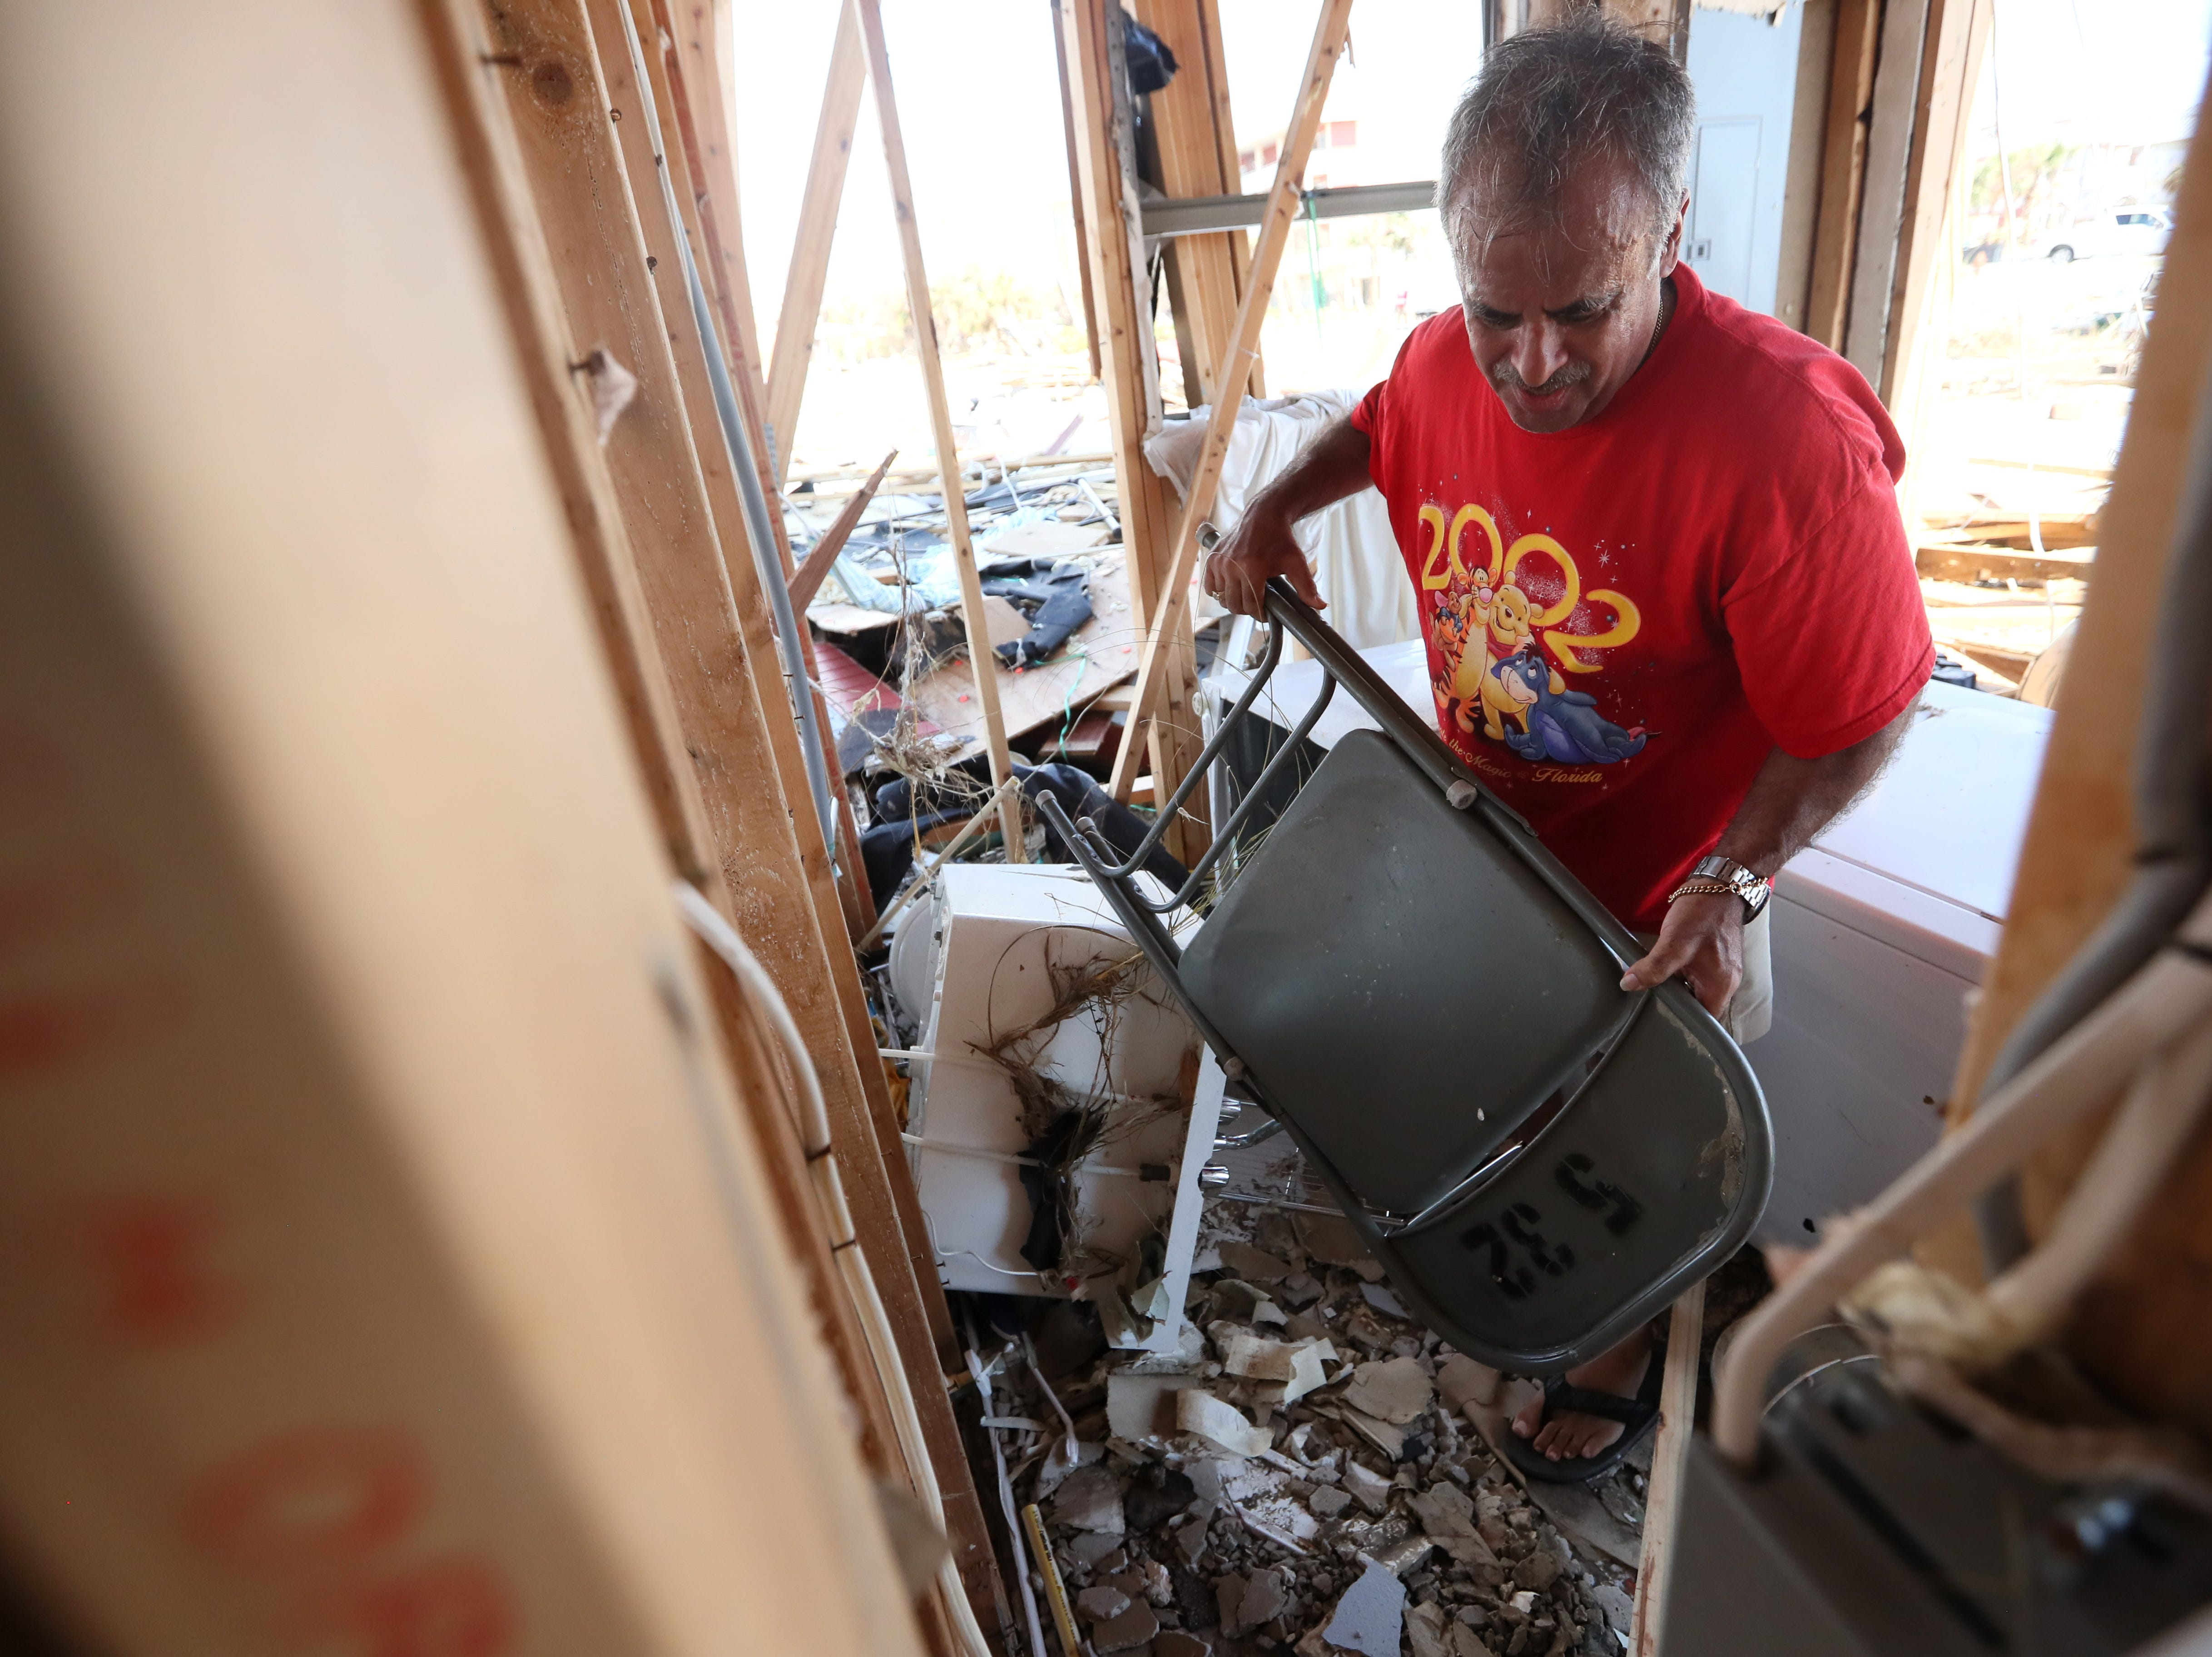 Jaques Sebastiao stands inside of his demolished Mexico Beach home on Wednesday, Oct. 17, 2018, one week after Hurricane Michael ripped through the coastal Florida town. Sebastiao moved in to the home fulltime with his with wife Bela just two months ago.